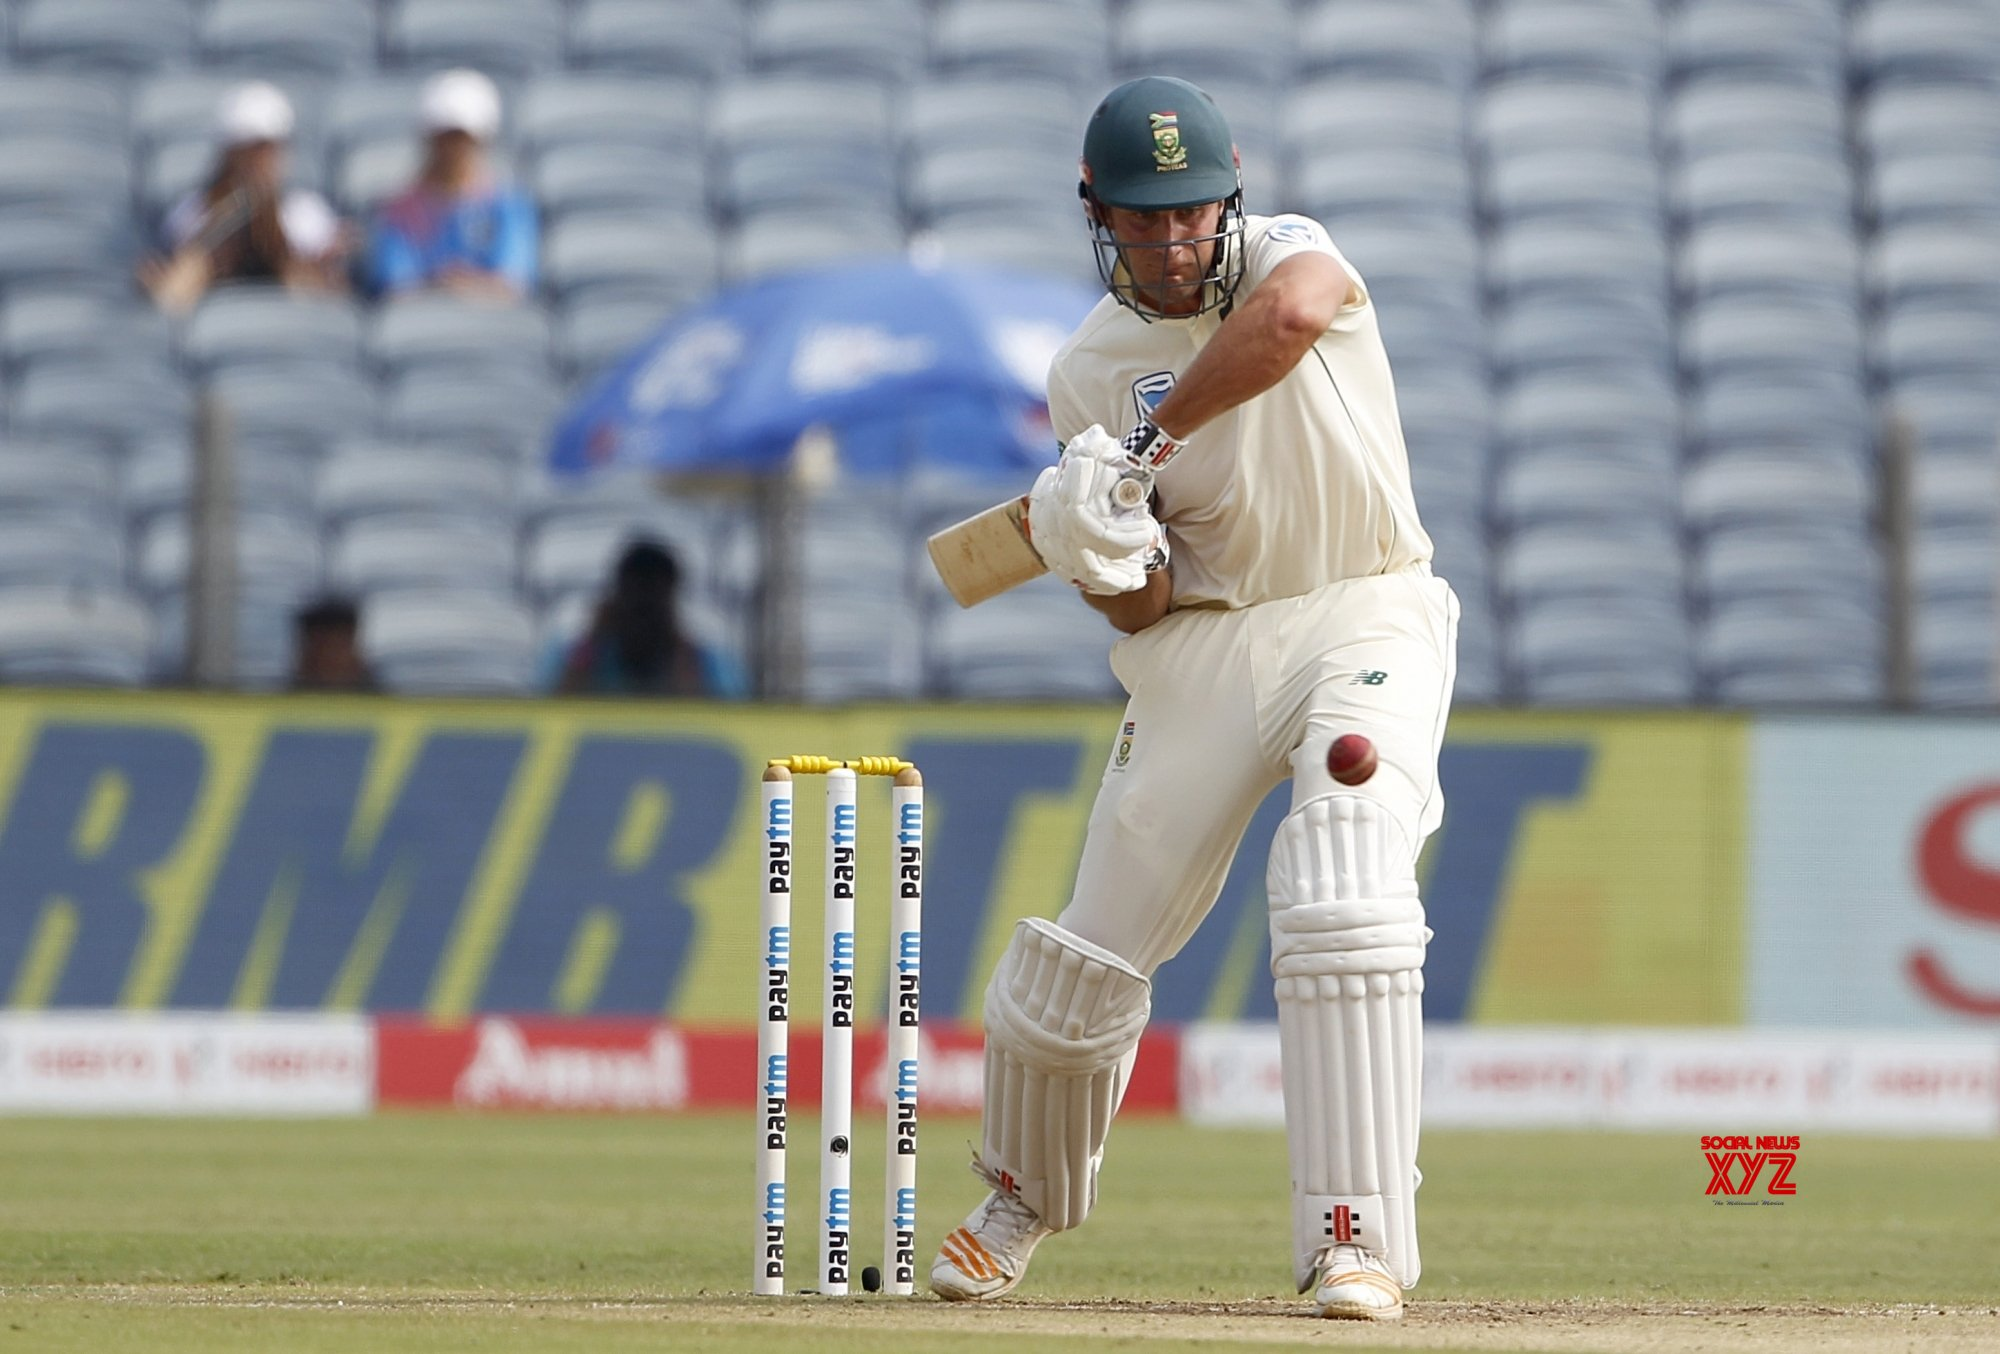 Pune: 2nd Test - India Vs South Africa - Day 3 (Batch - 4) #Gallery